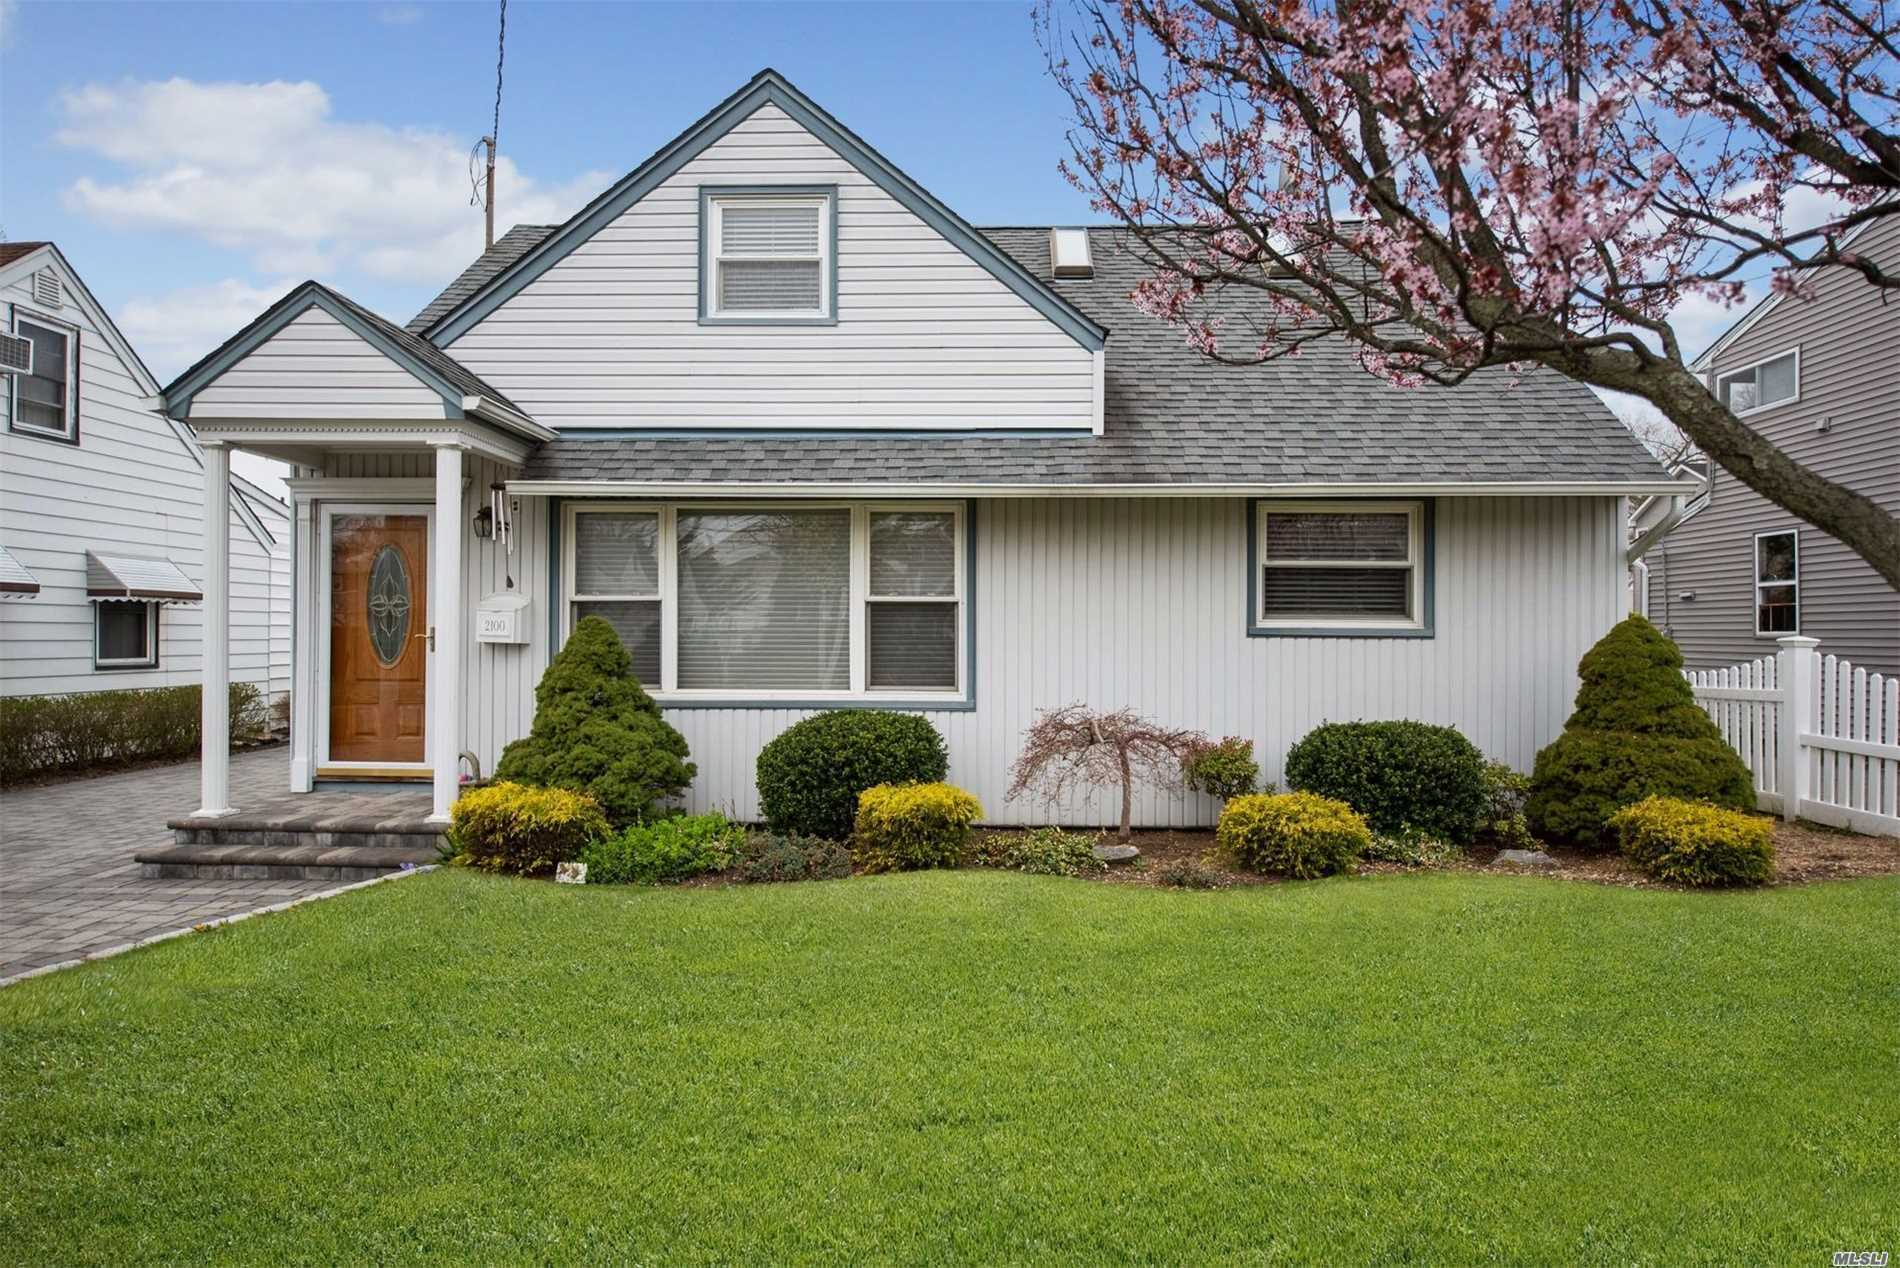 mint condition, and all quality workmanship, This home was featured in Newsday Article beautiful home less than 1/2 mile from Long Island Rail Road, It is located in Wantagh Schools and Beech St Elementary School, features 2 updated baths and a beautiful Kitchen, cozy Den extension, King size garage with upstairs storage, mid block location